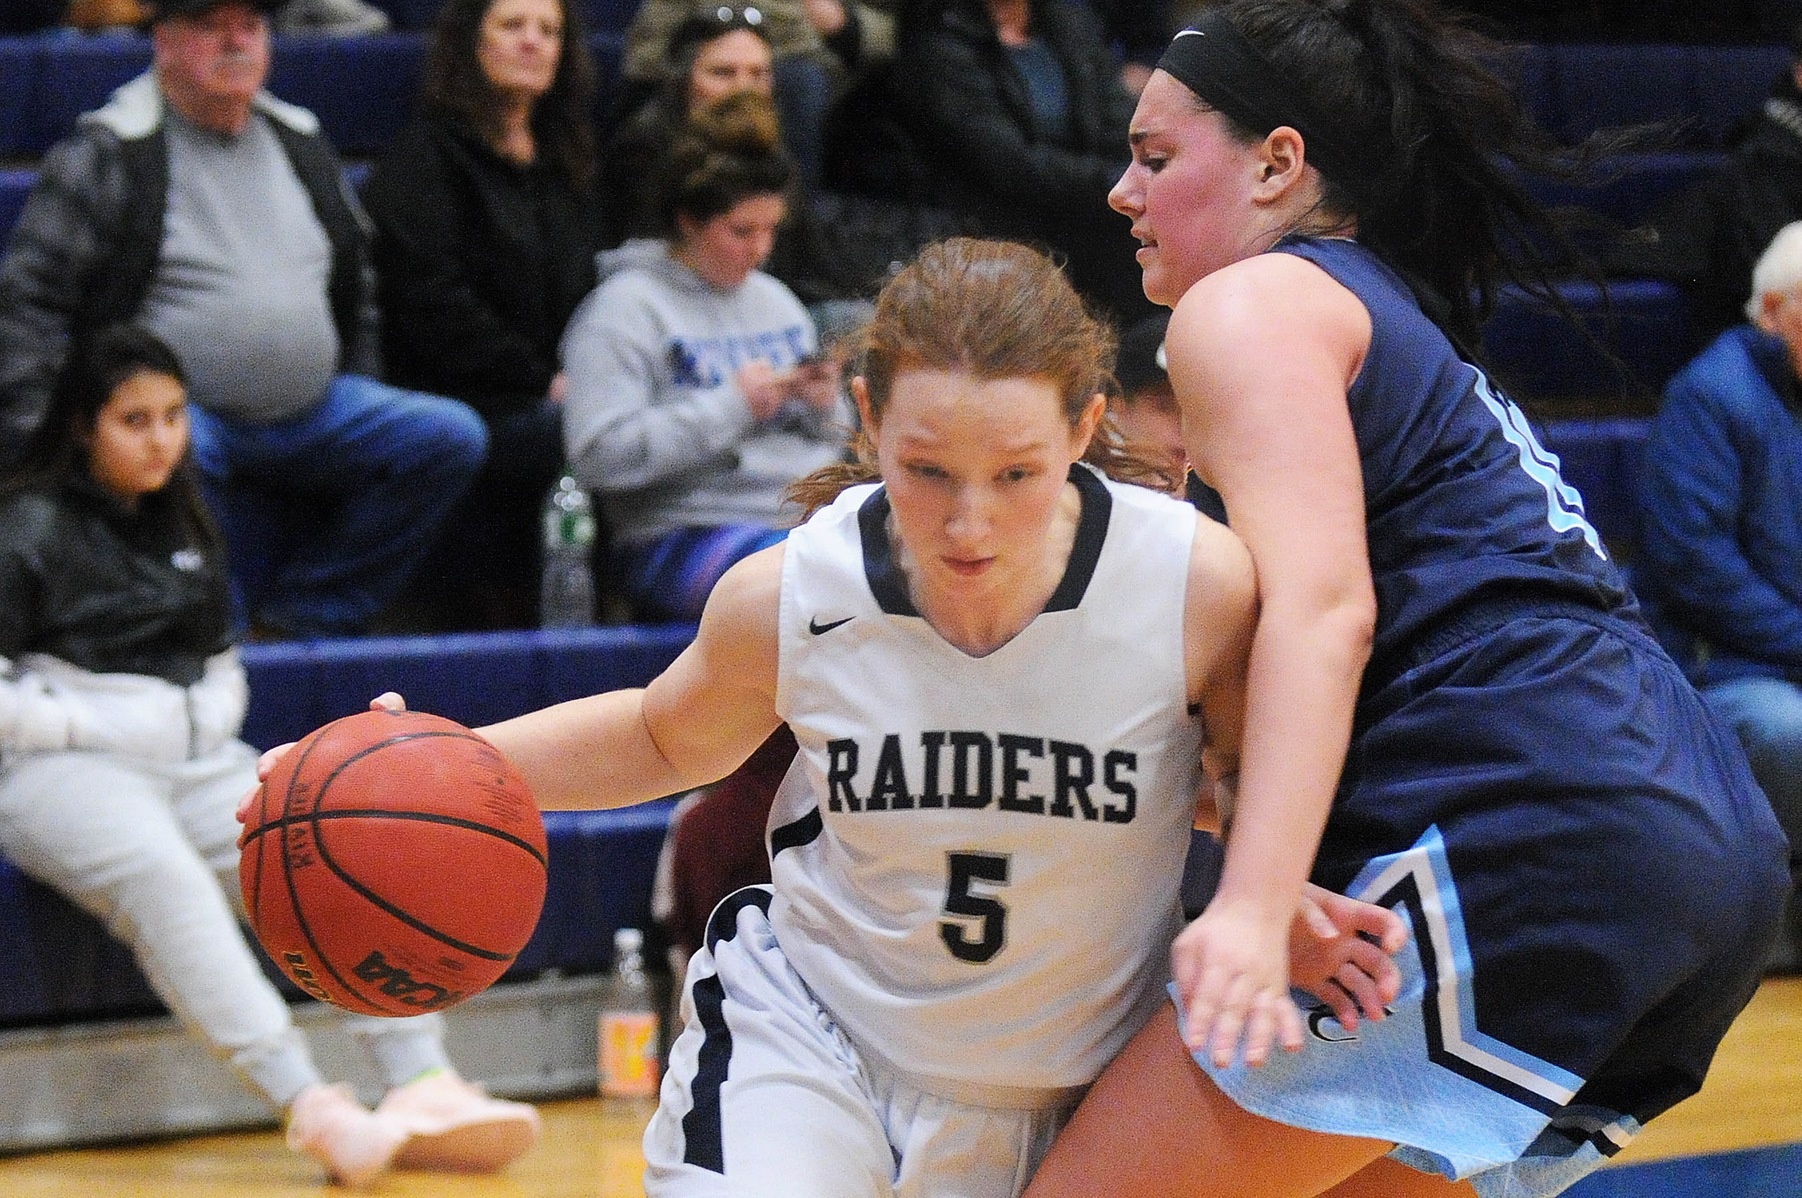 Women's Basketball: Macken nets career high in win over CSJ-Vt.